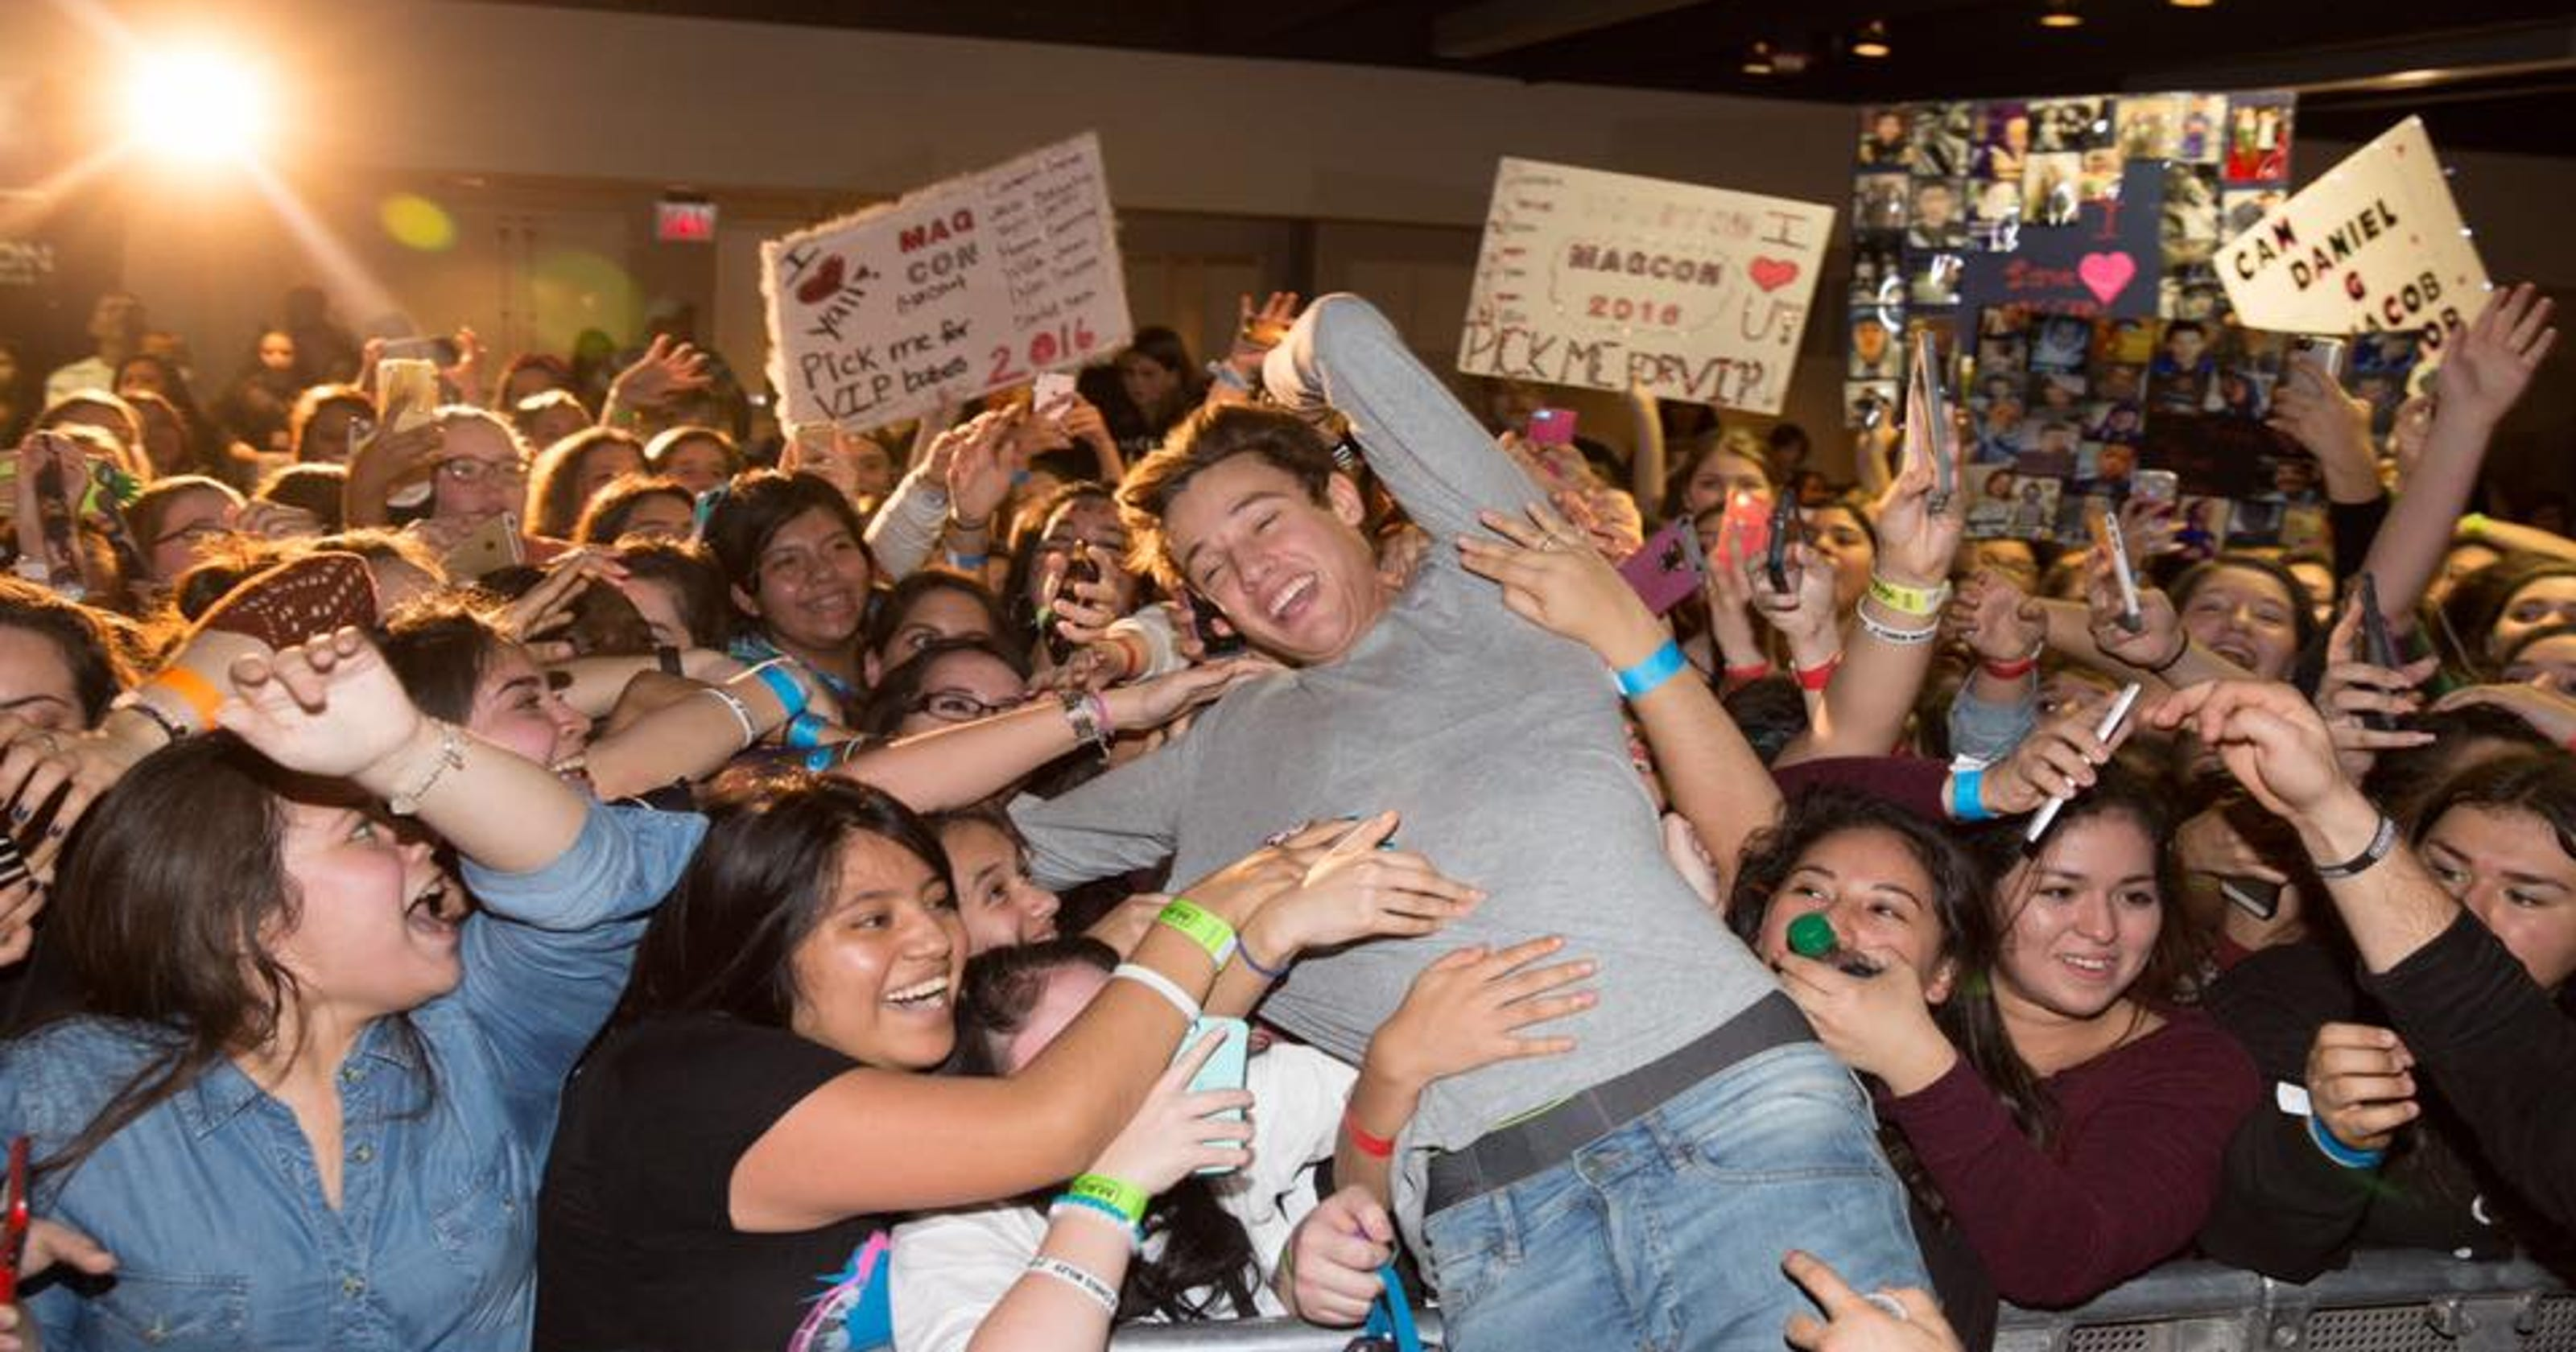 Selfie Time Magcon Stars Hit Freehold And Sayreville